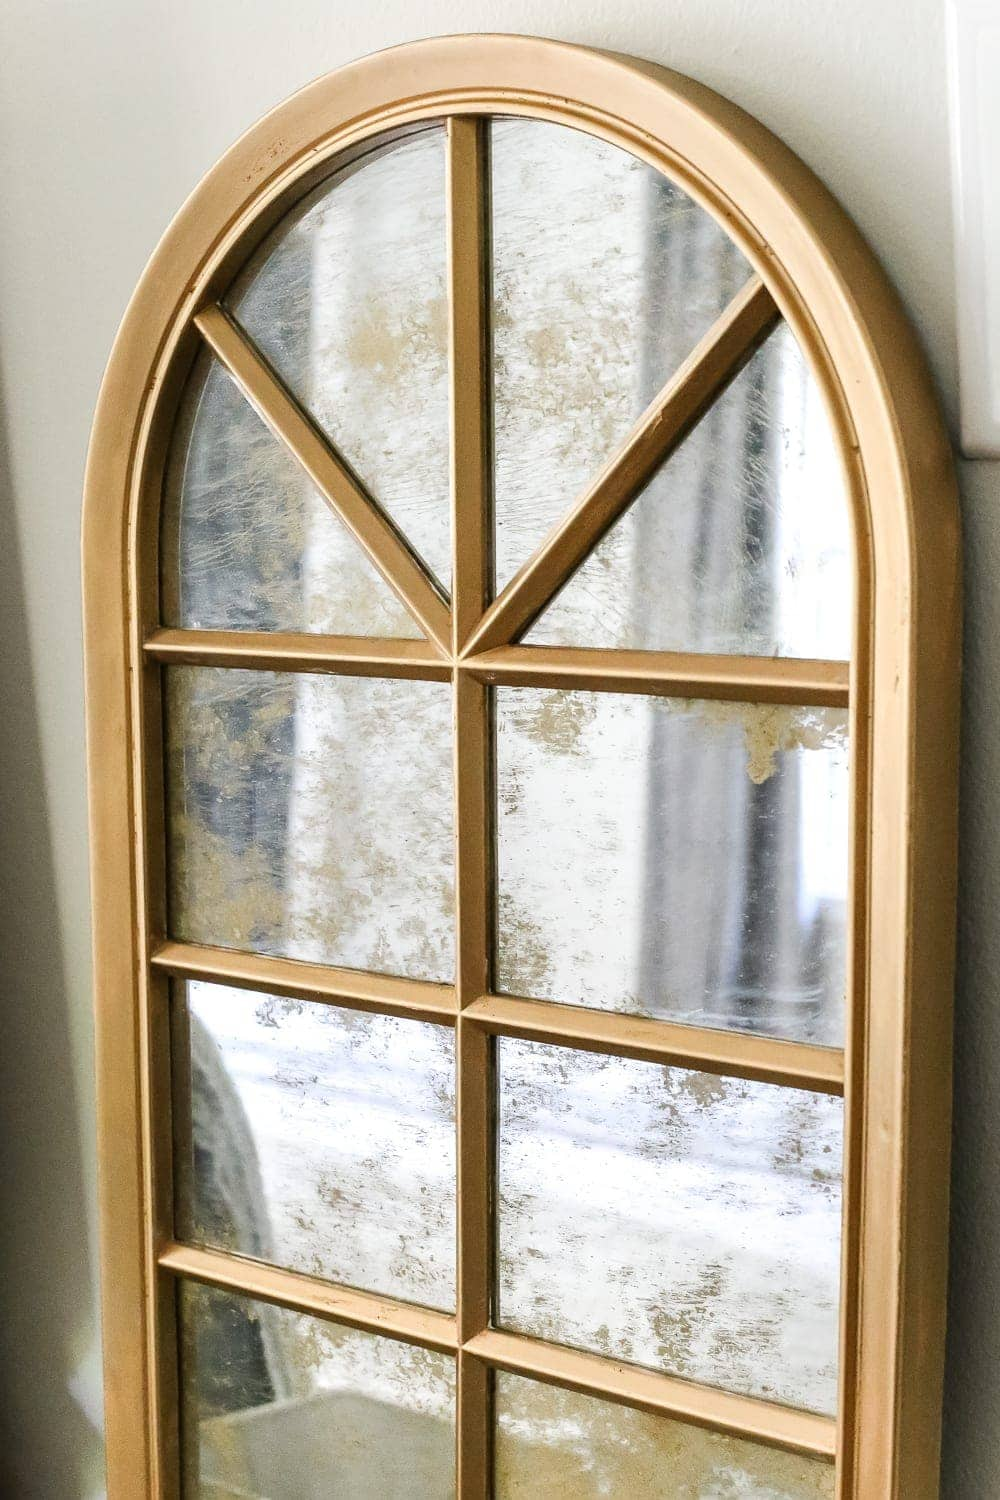 DIY Aged Gold Antique Mirror Makeover | blesserhouse.com - A DIY tutorial to transform a cheap, plastic mirror to look like an Anthropologie inspired aged gold antique mirror using Rub 'n Buff.